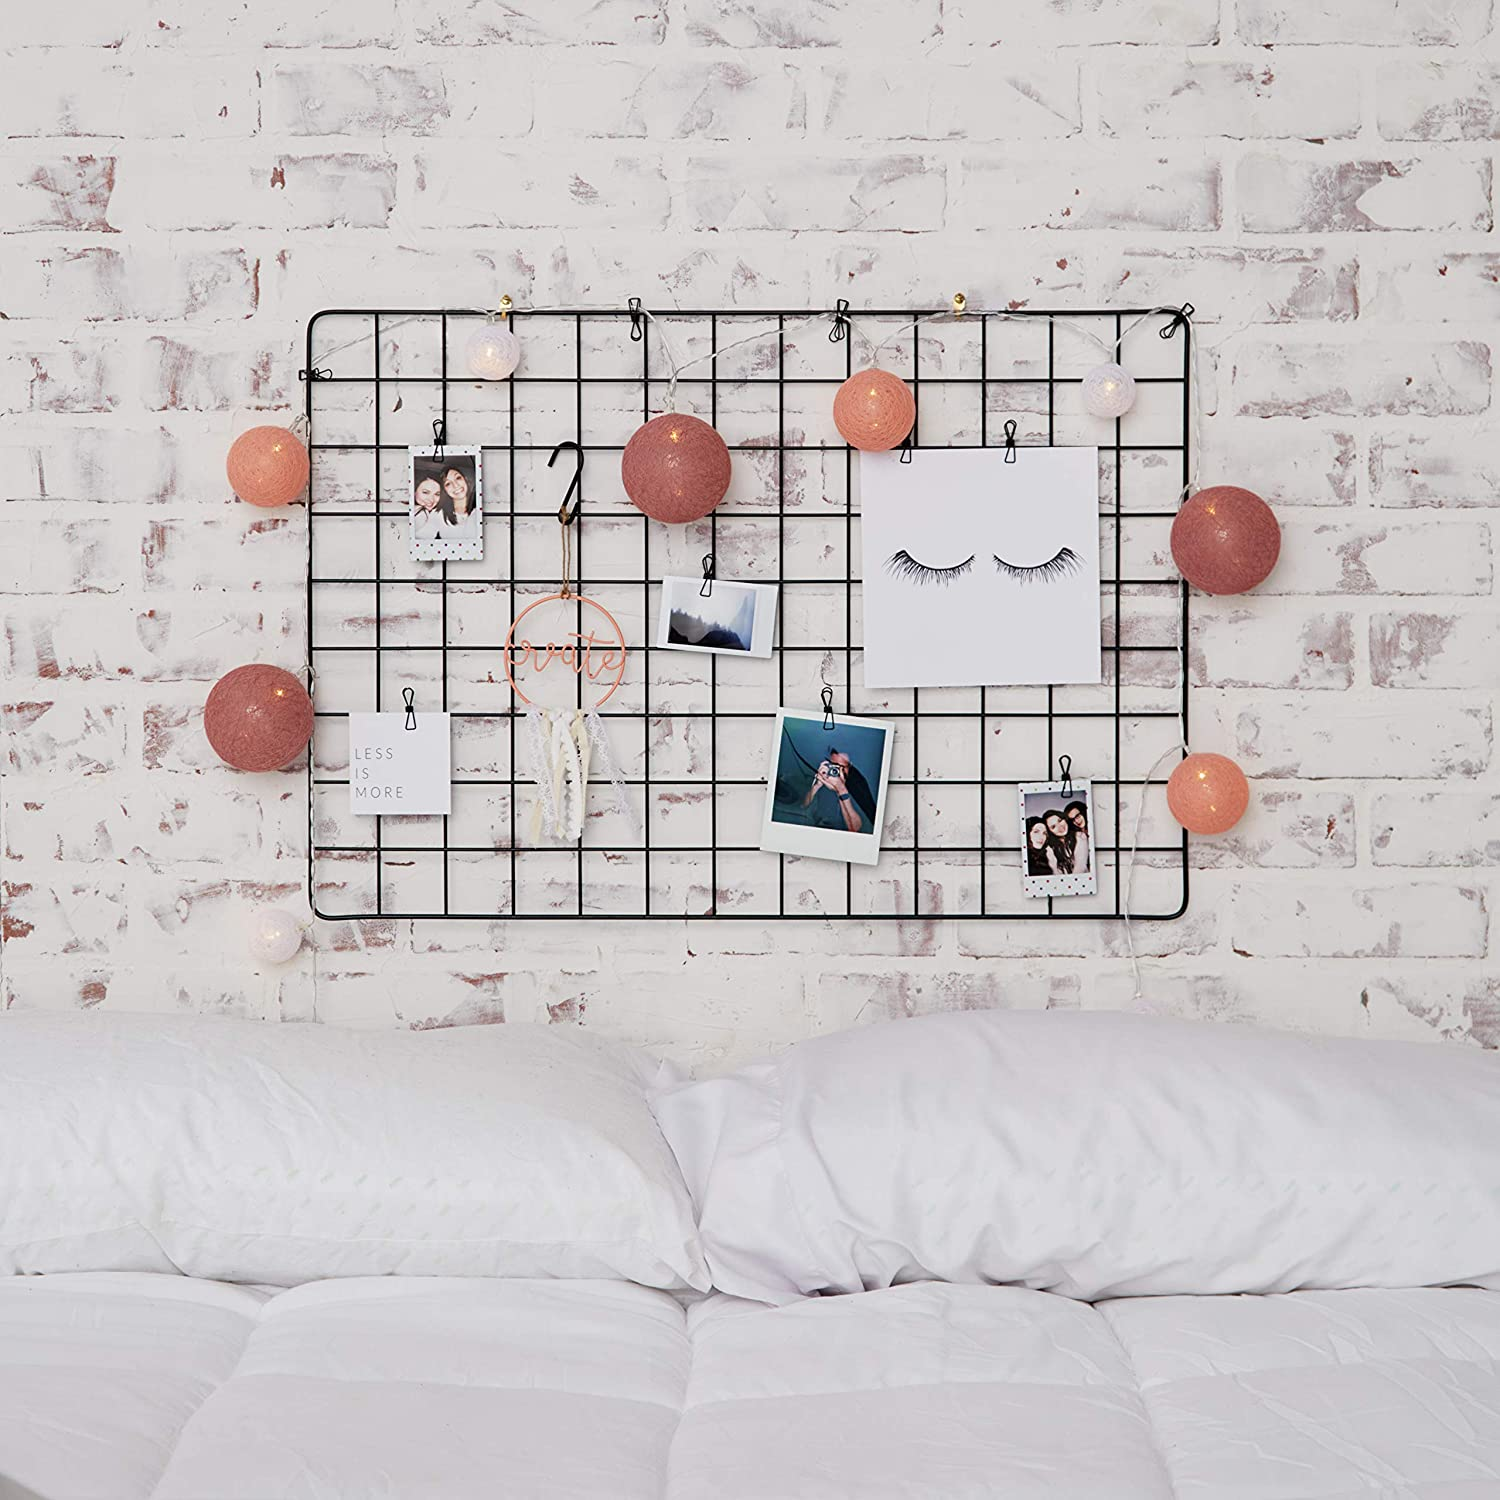 Set of 2 Fourberry Wire Wall Grid Panel for Photo Display 25.6x17.7in